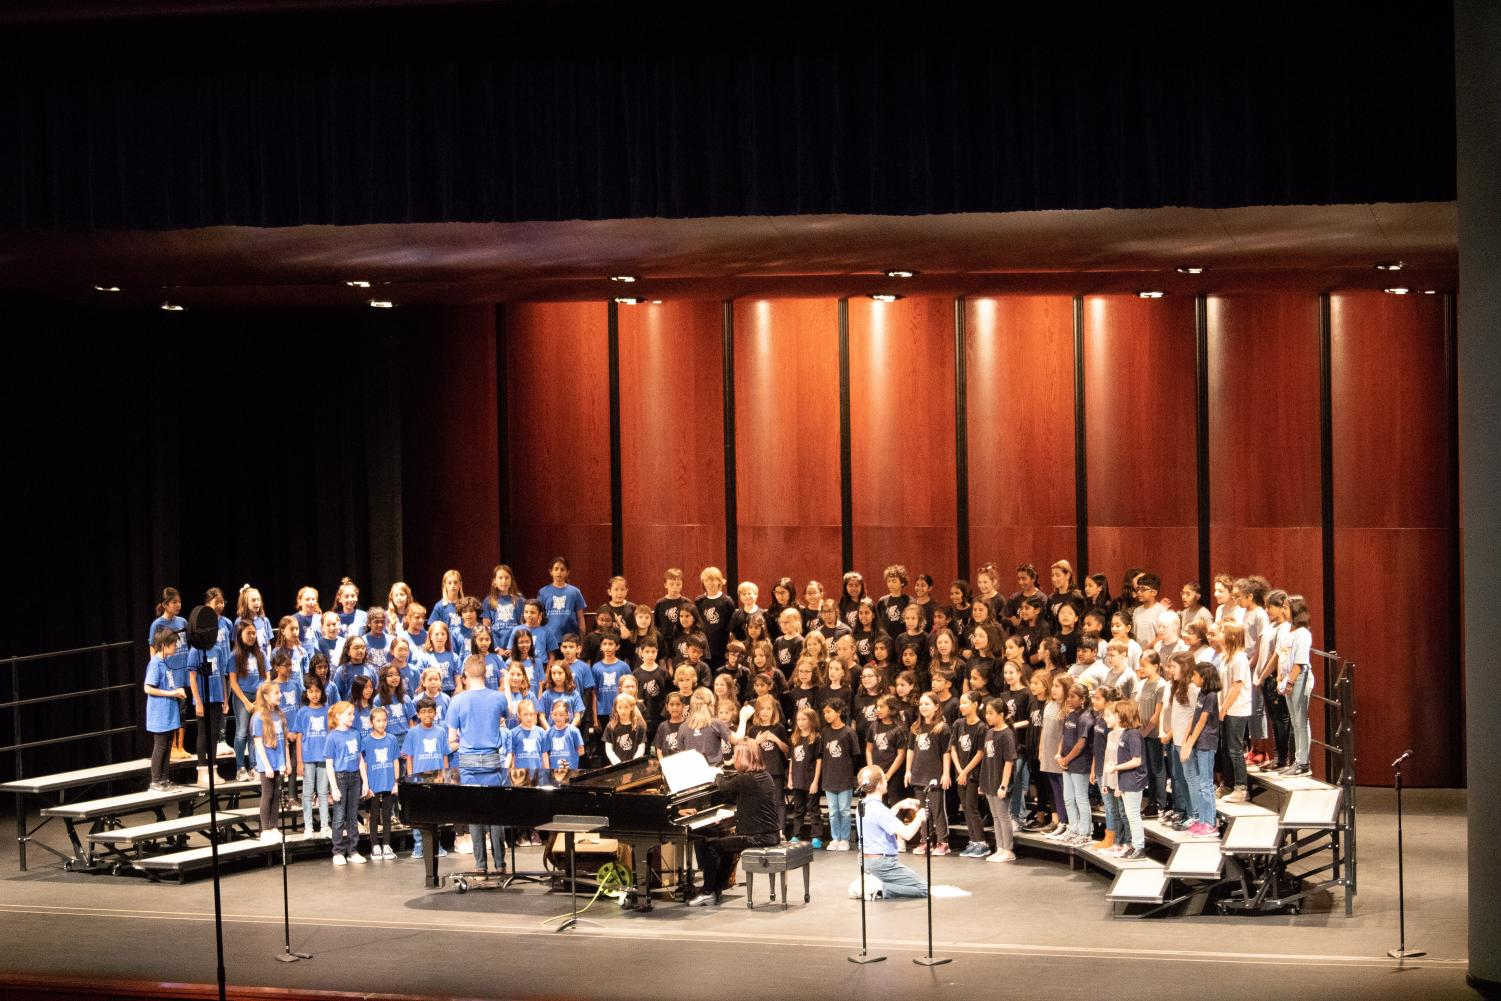 Choirs+from+Anderson+Mill%2C+Canyon+Creek%2C+and+Caraway+Elementary+perform+on+stage.